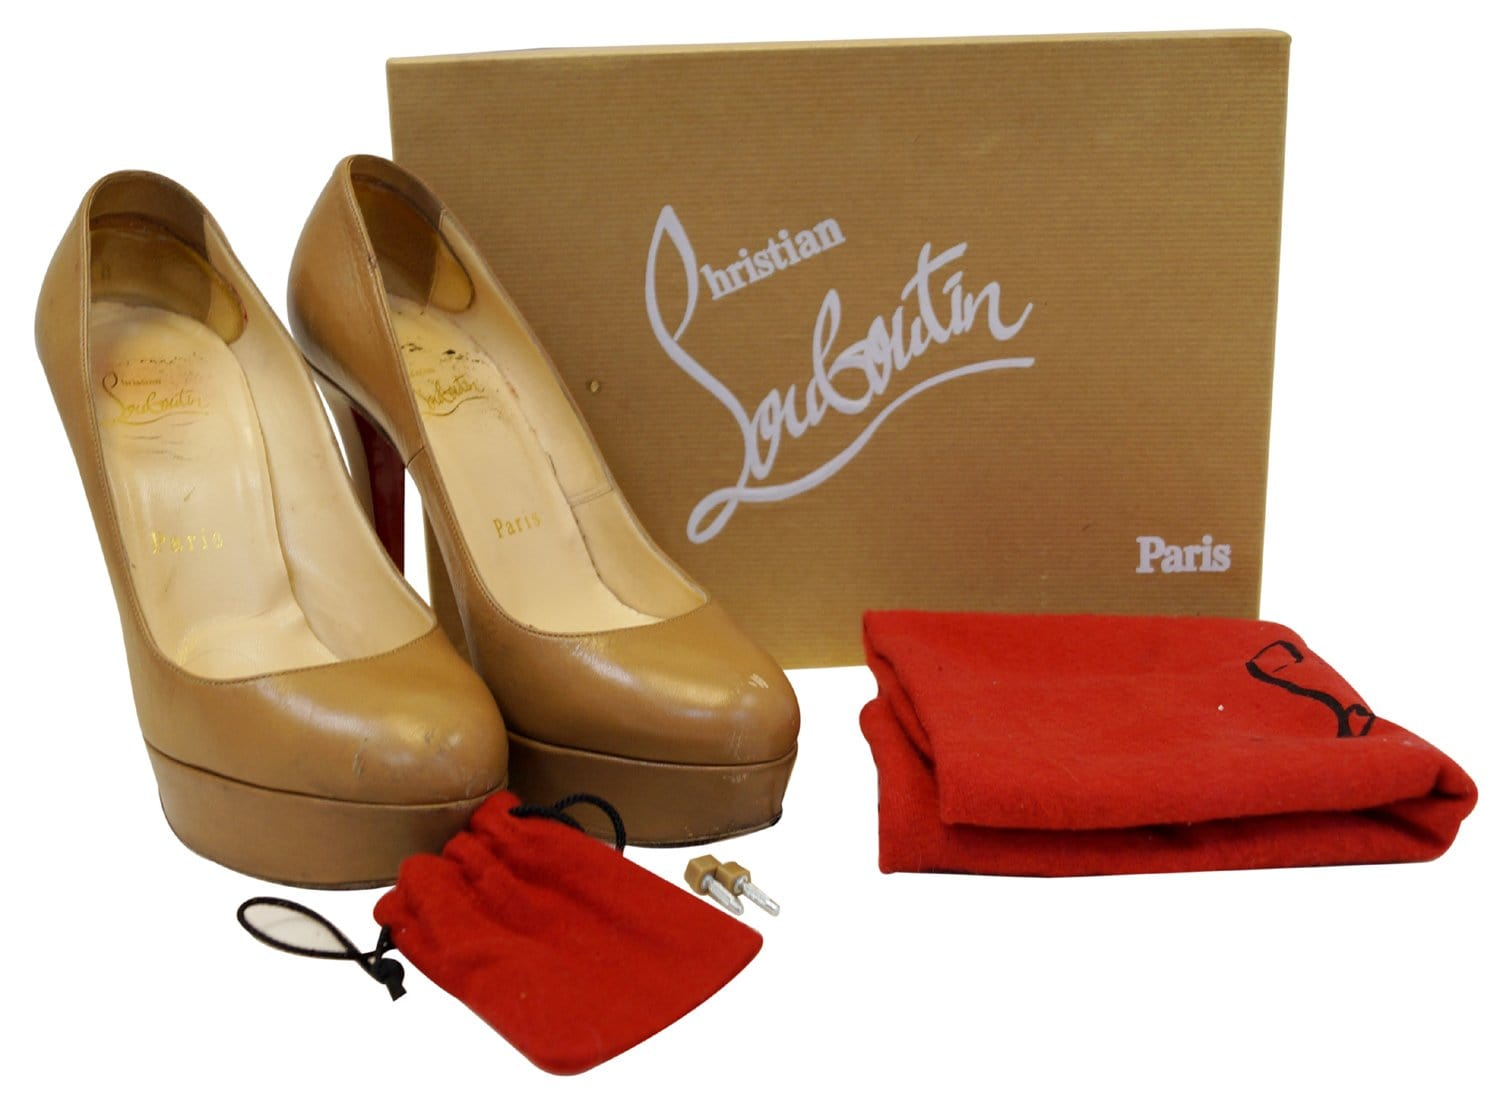 new products 6a587 34d67 Christian Louboutin Bianca 140 Platform Leather Camel Pumps - Sale